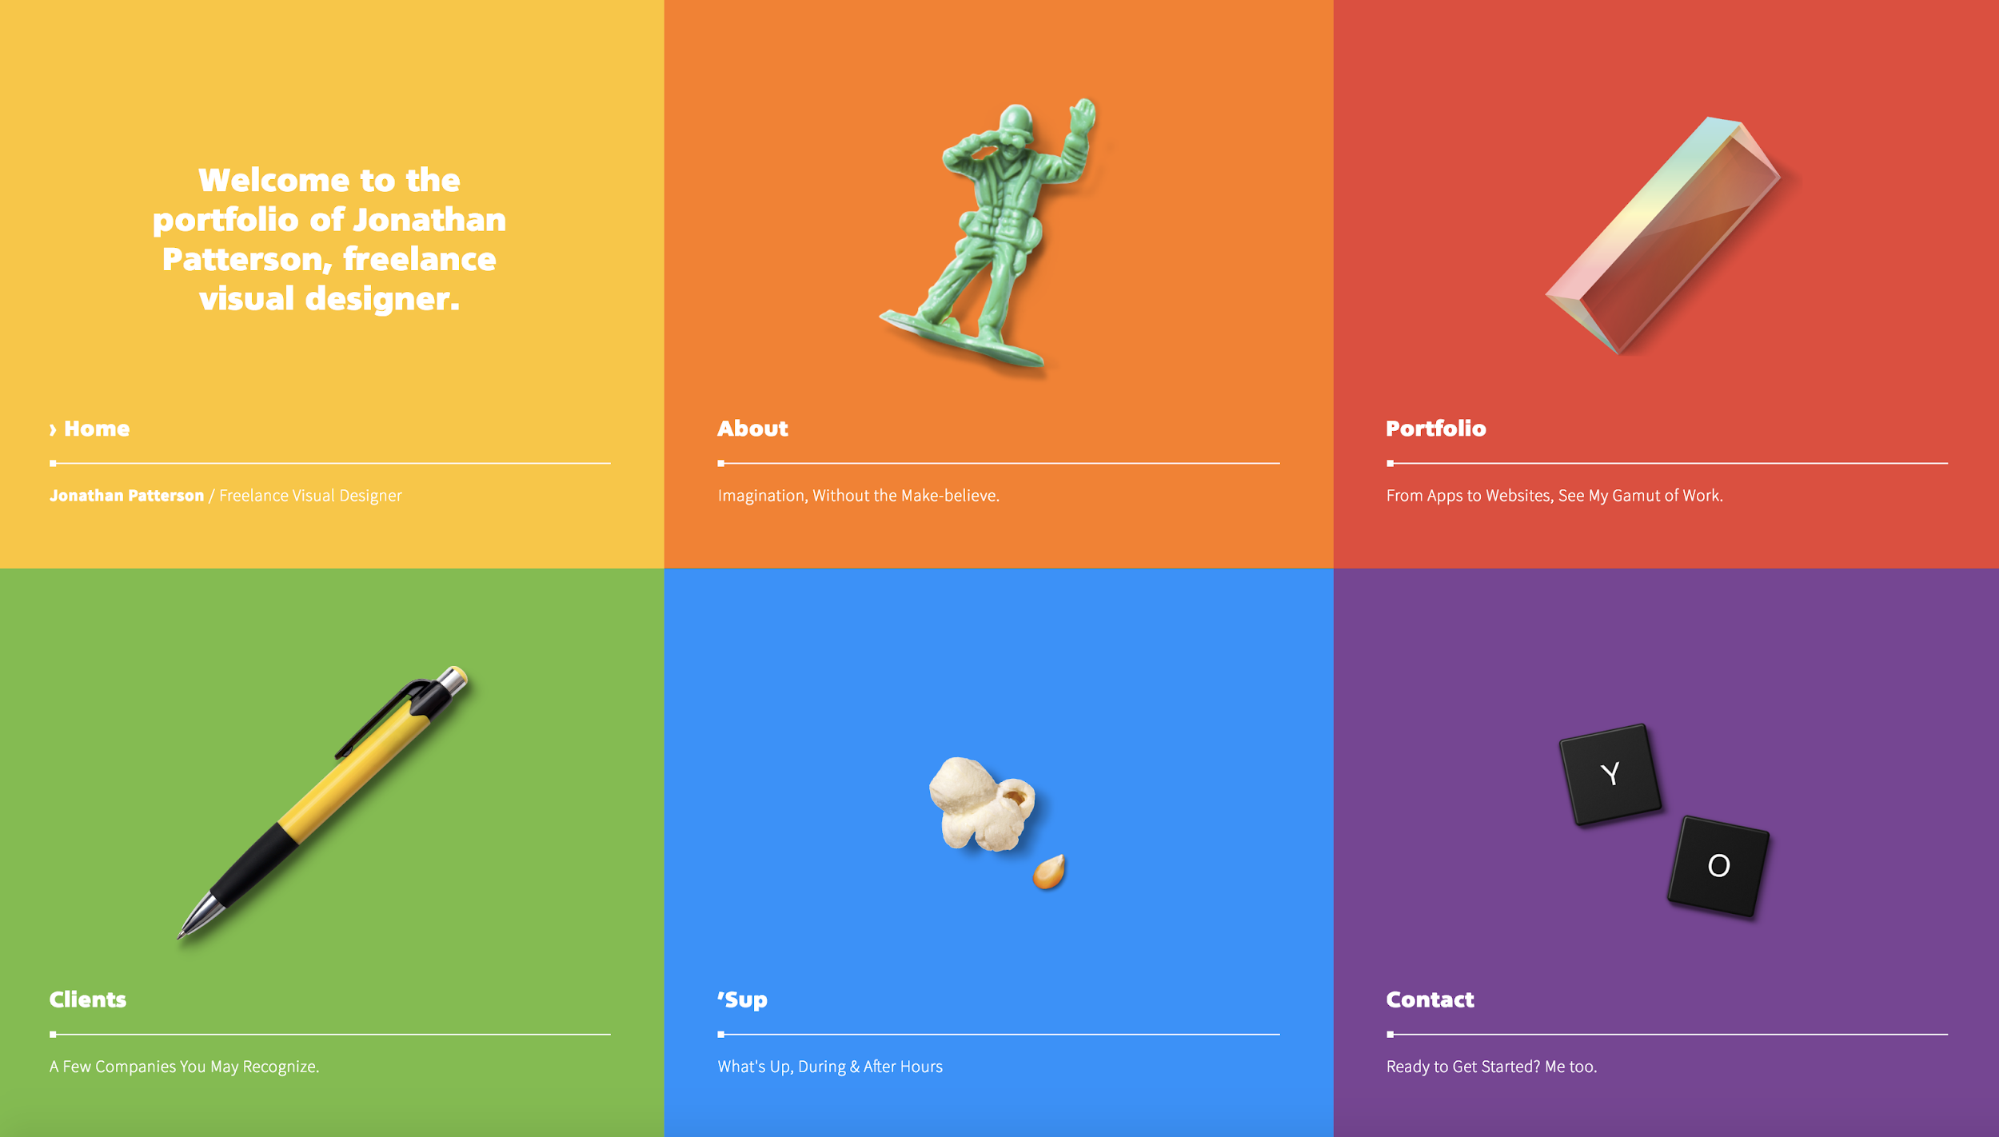 9 inspiring portfolios and insights from the designers behind them color me impressed jonathan patterson a fandeluxe Choice Image